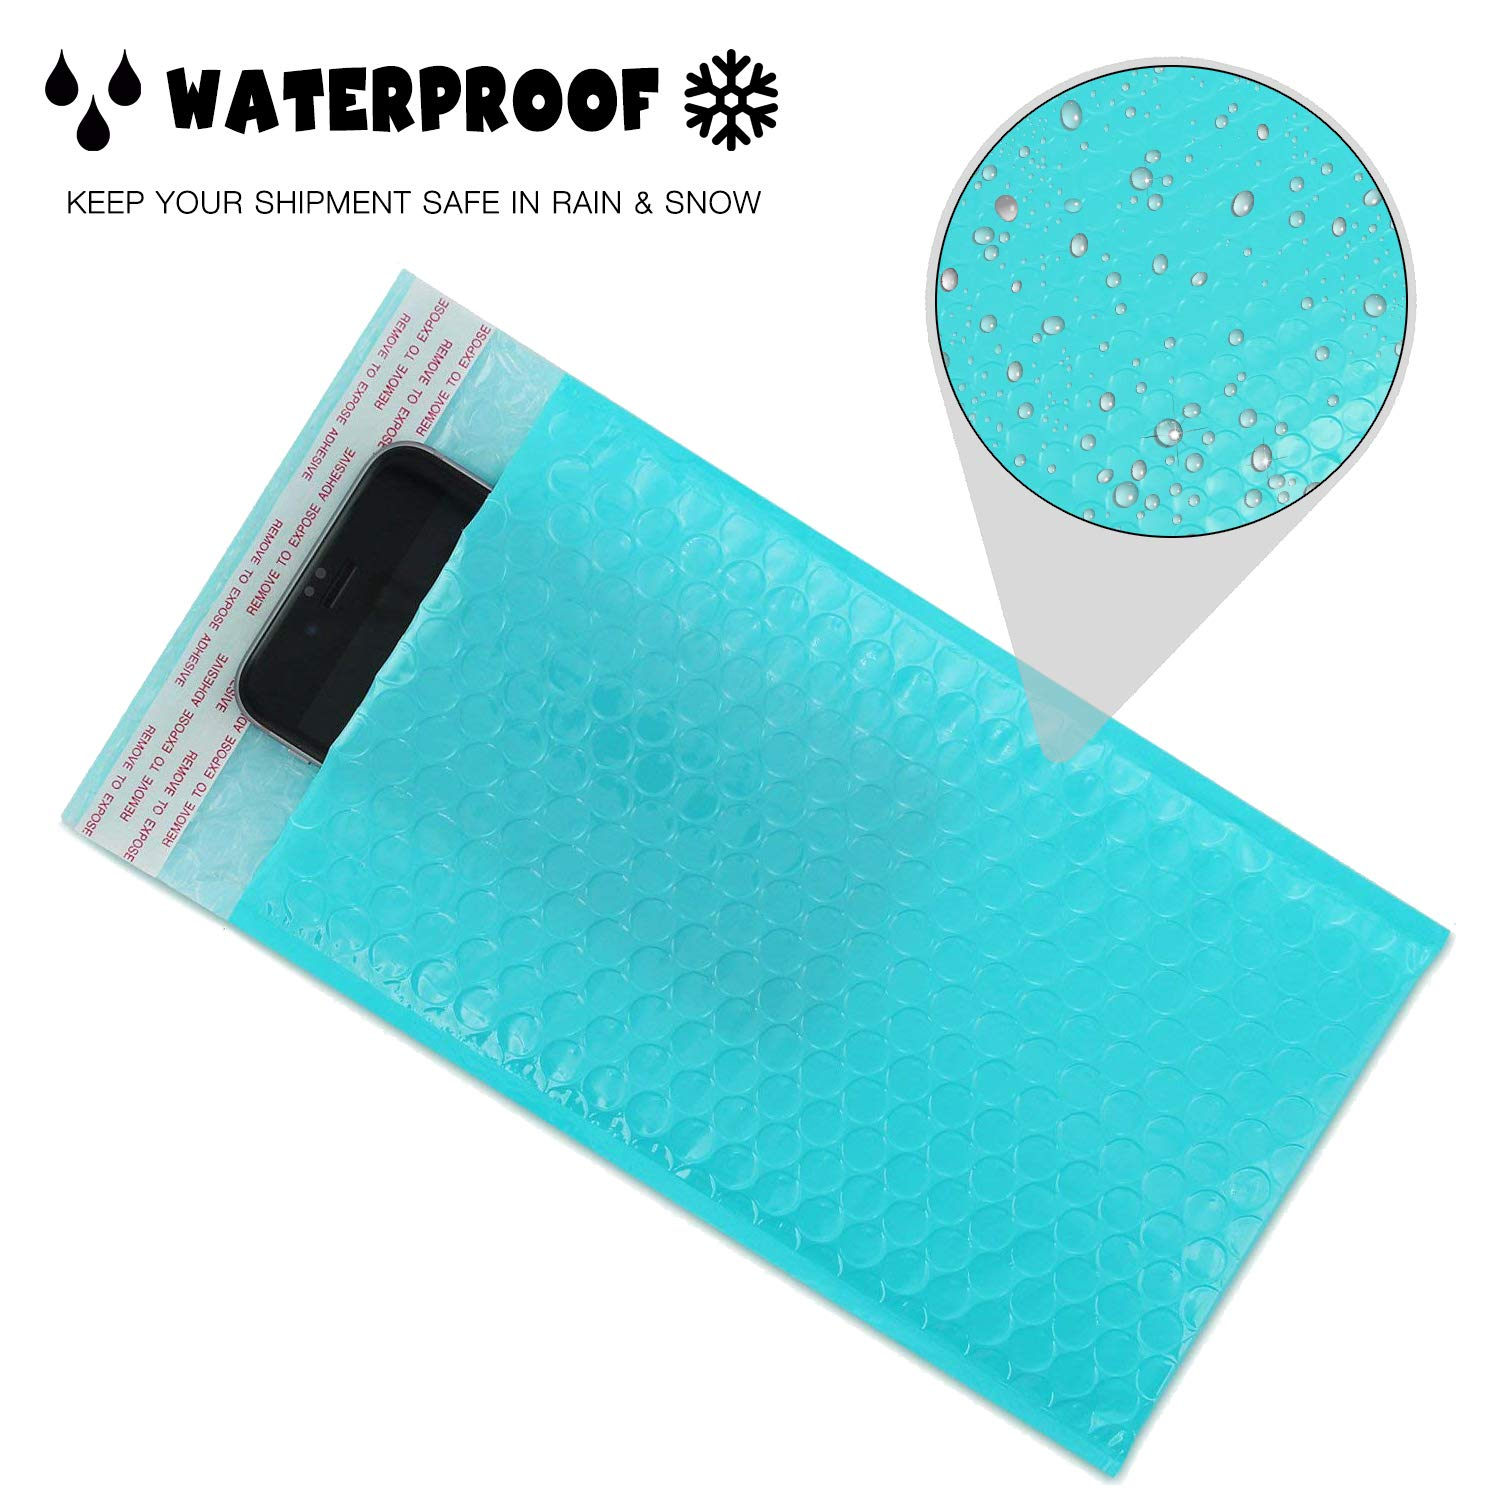 Yomuse B//00 Packaging Self-Seal Padded Bubble Plastic Mailers Postage Bags 130mm x 210mm 40mm Lip Teal Pack of 300